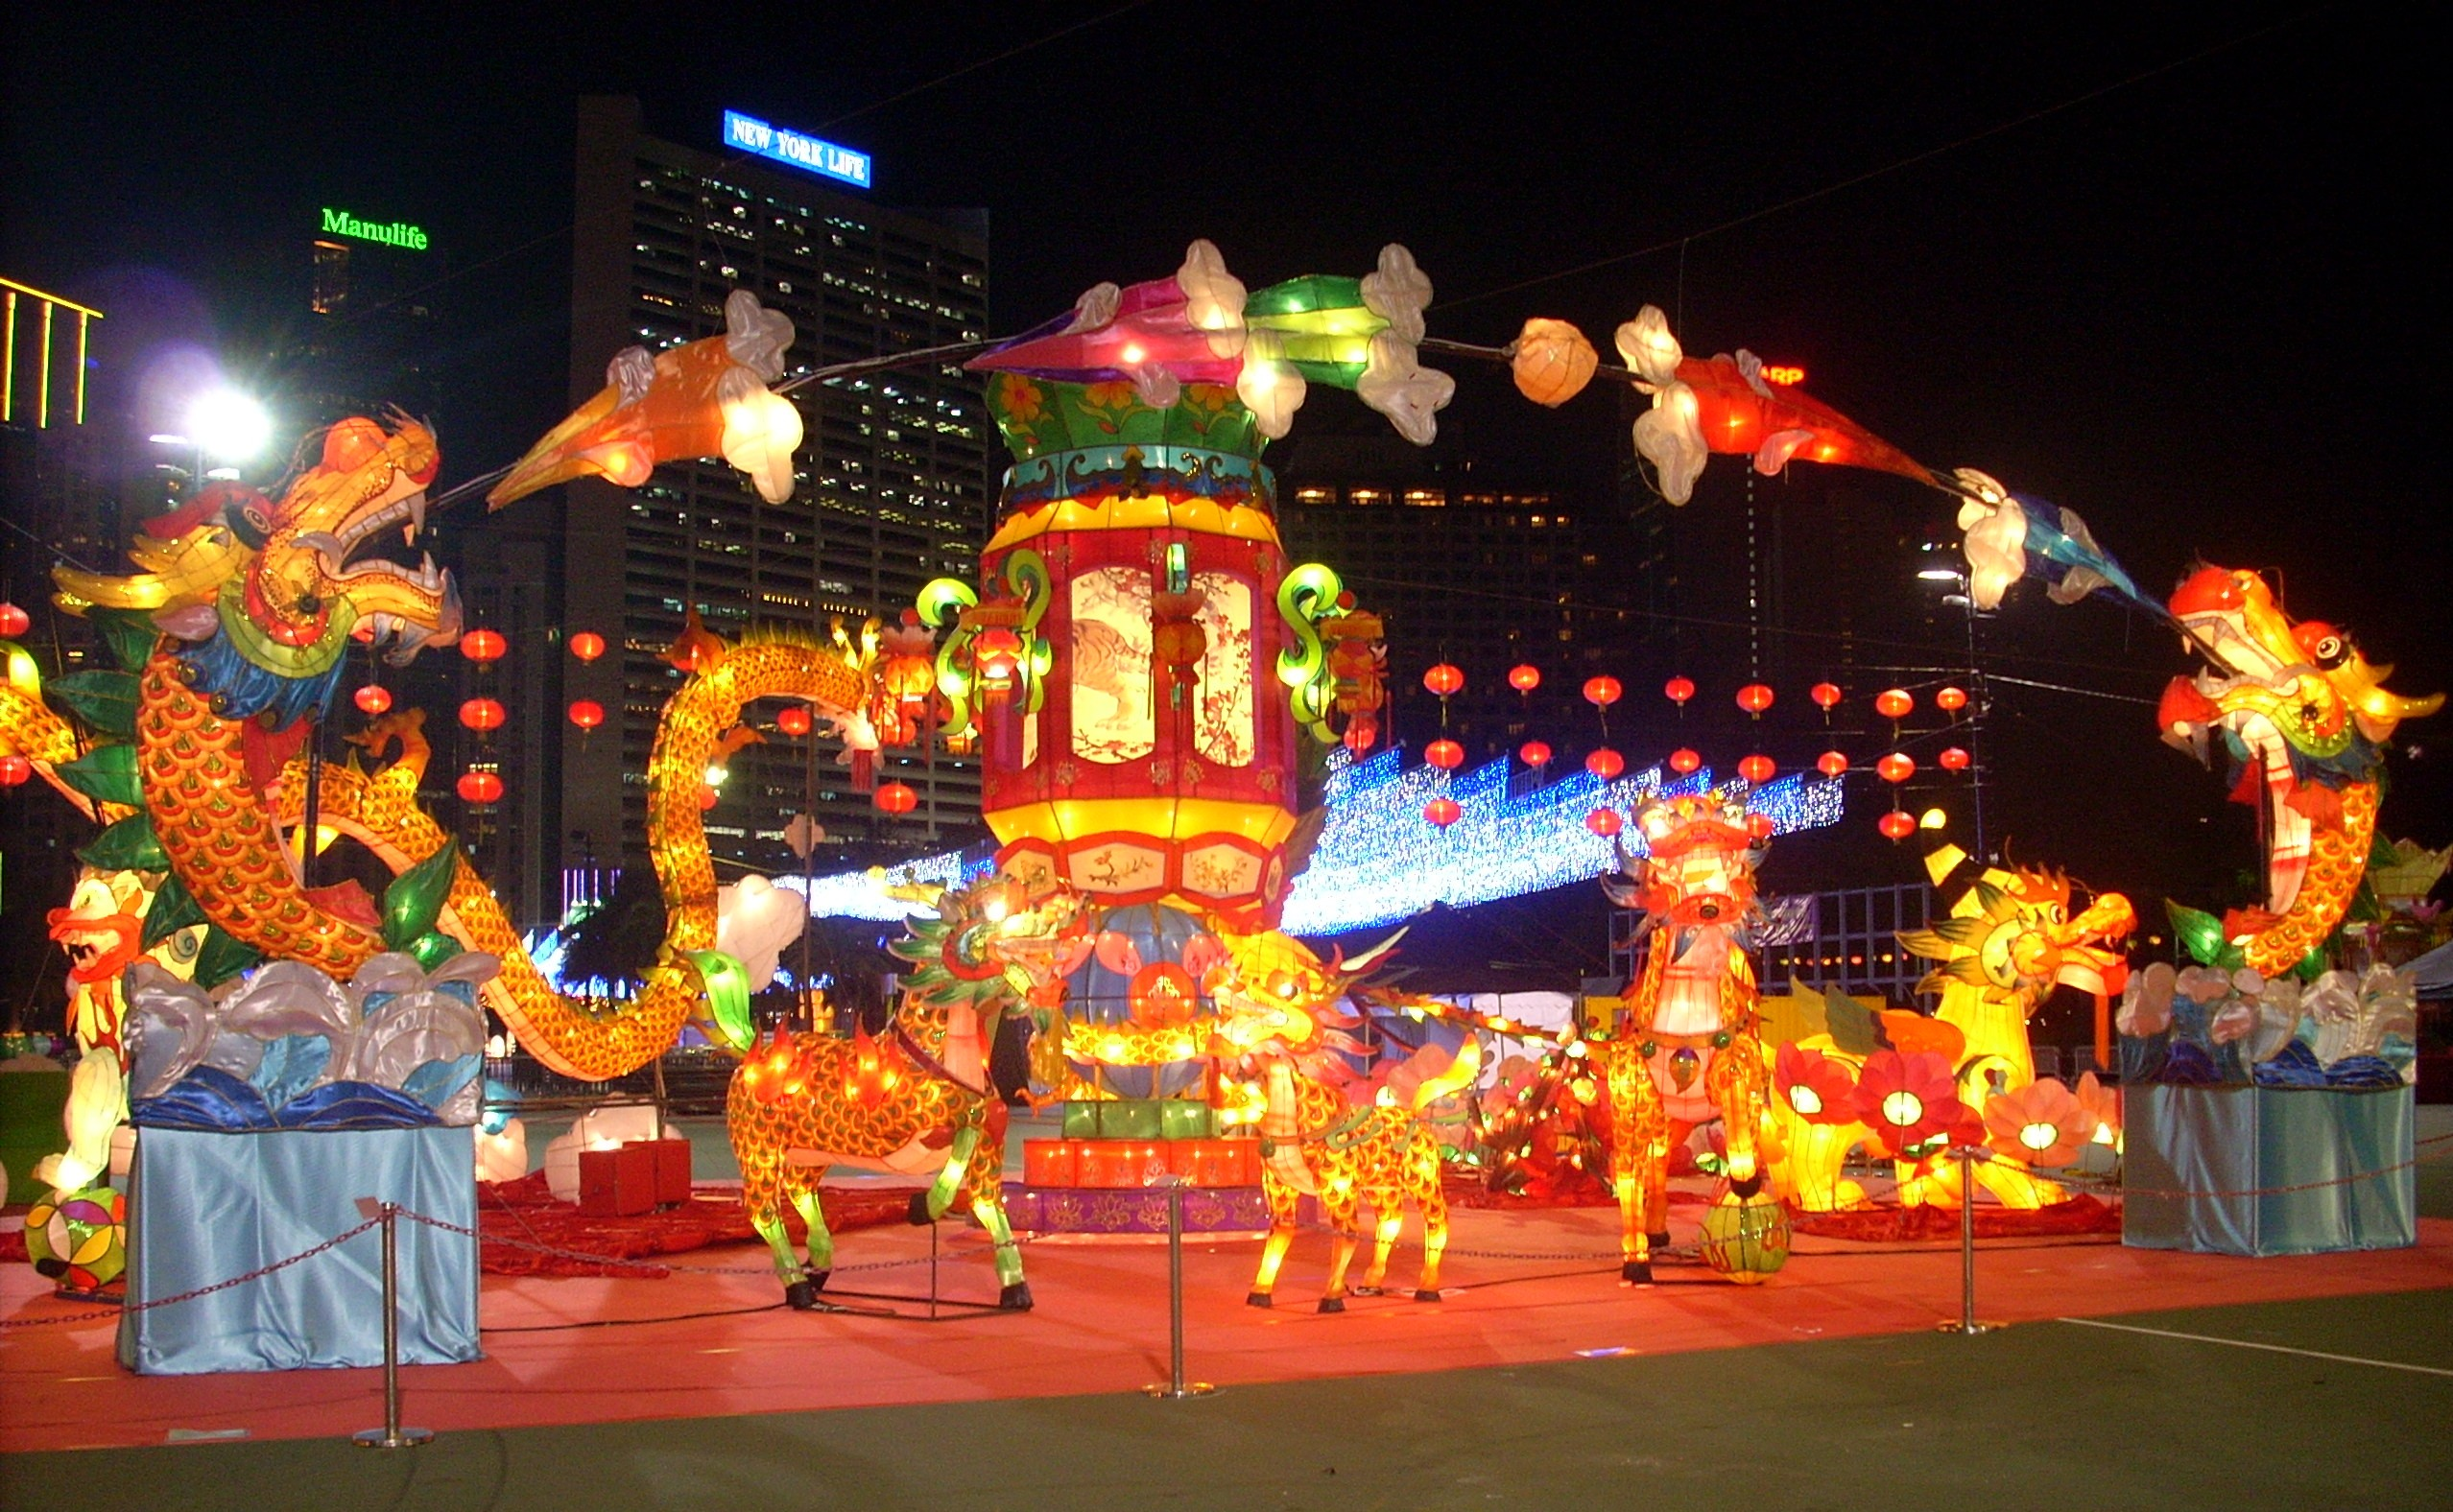 3 ways to enjoy a chinese moon festival wikihow - HD2556×1576